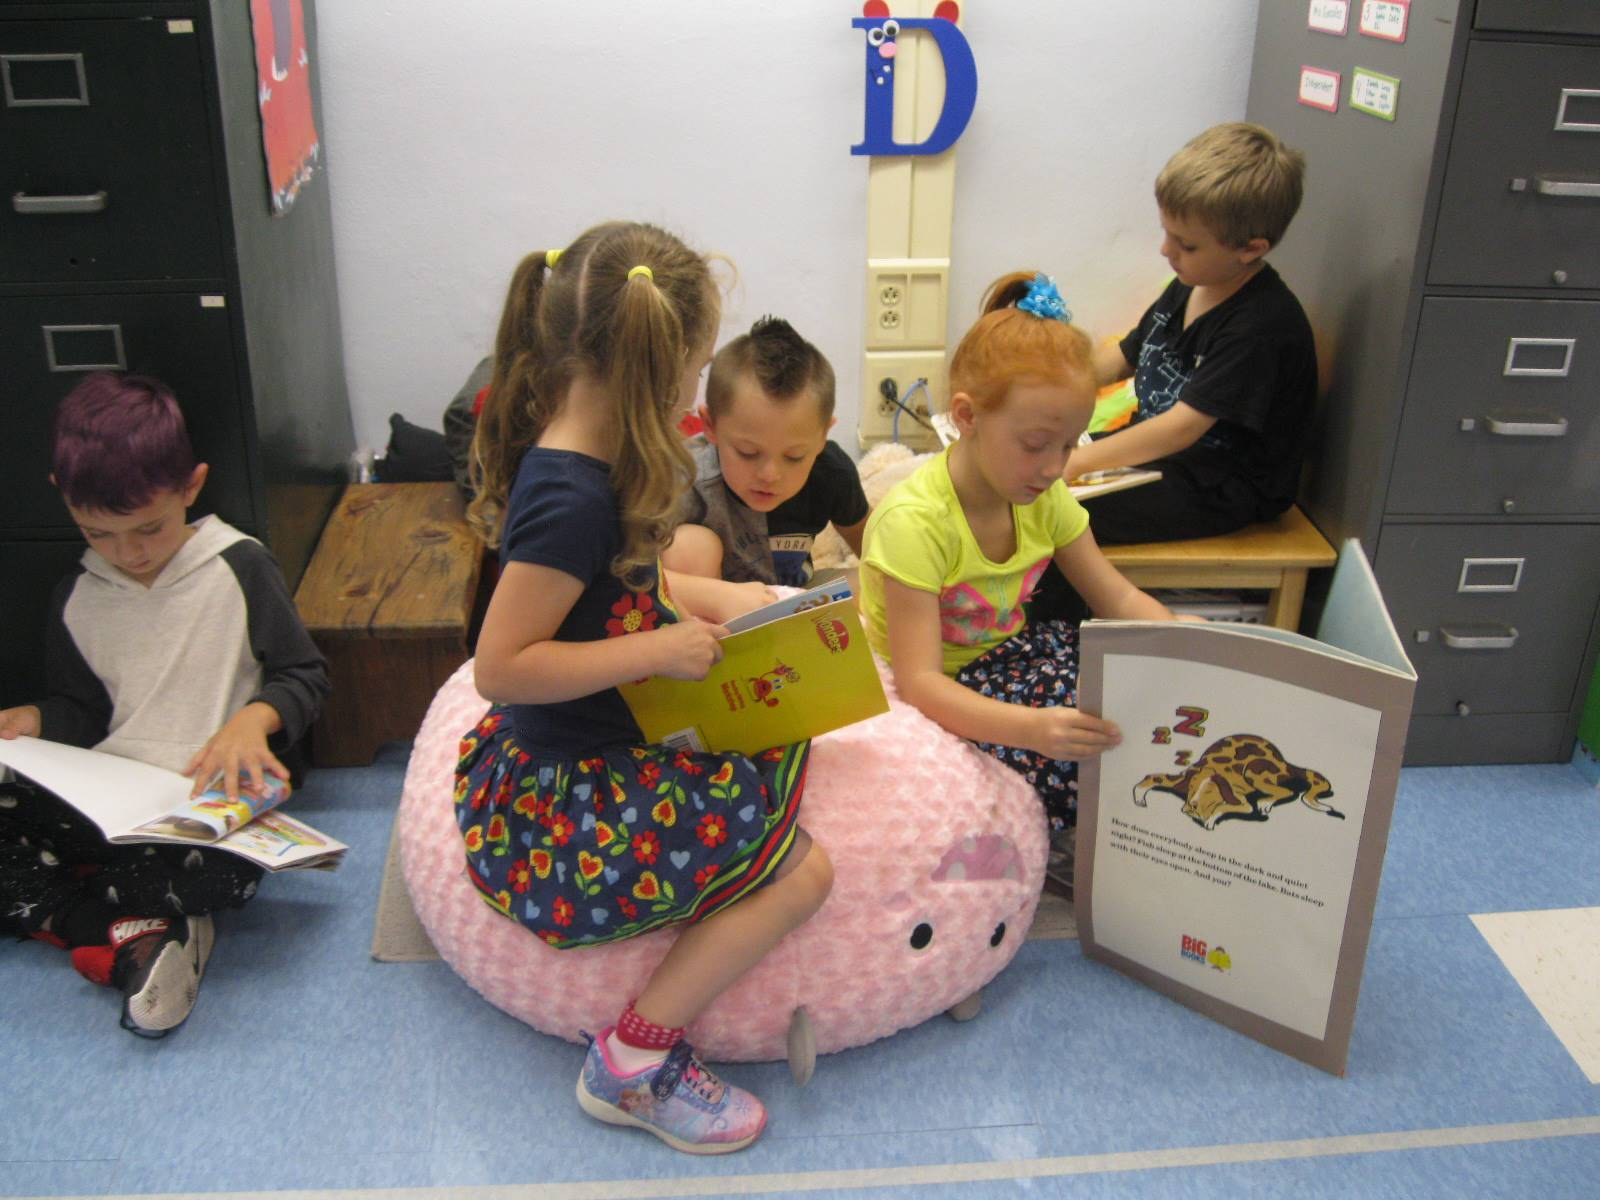 5 Students read books.